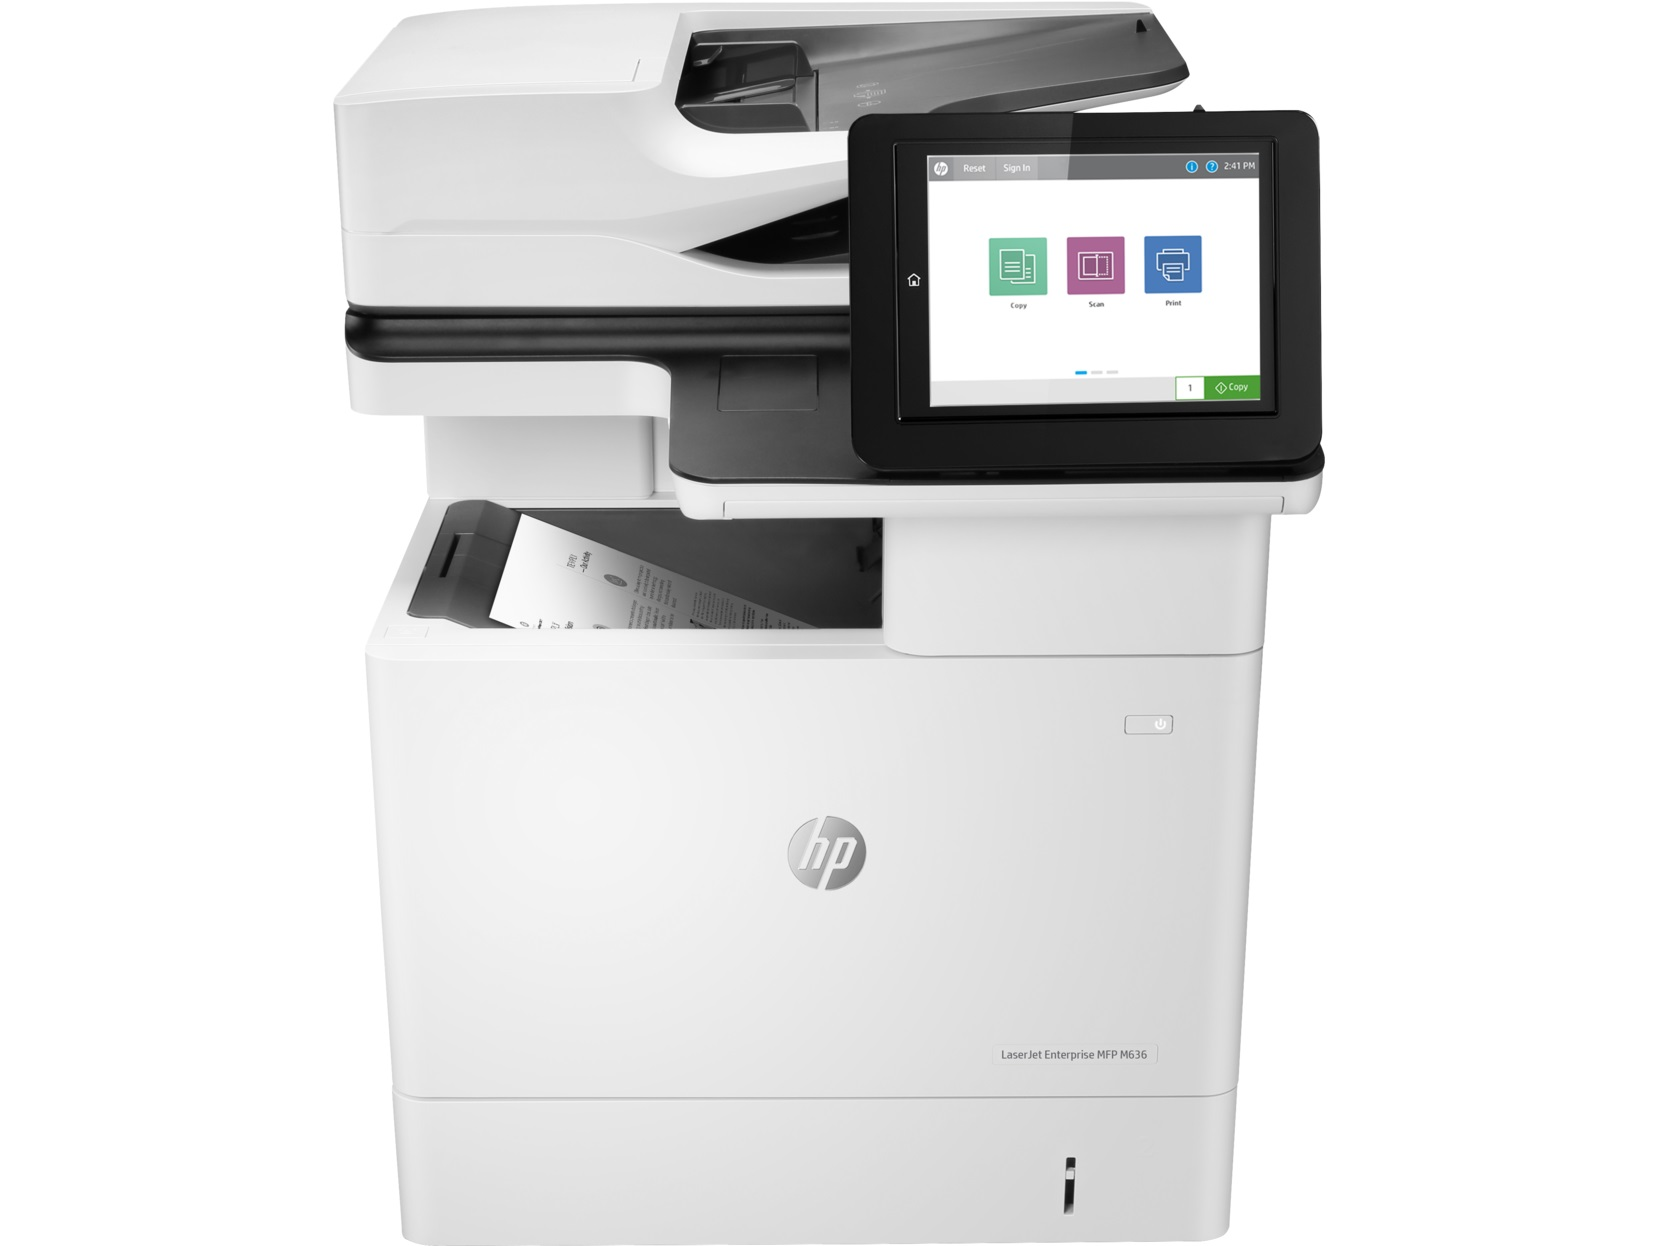 HP LaserJet Enterprise MFP M636fh